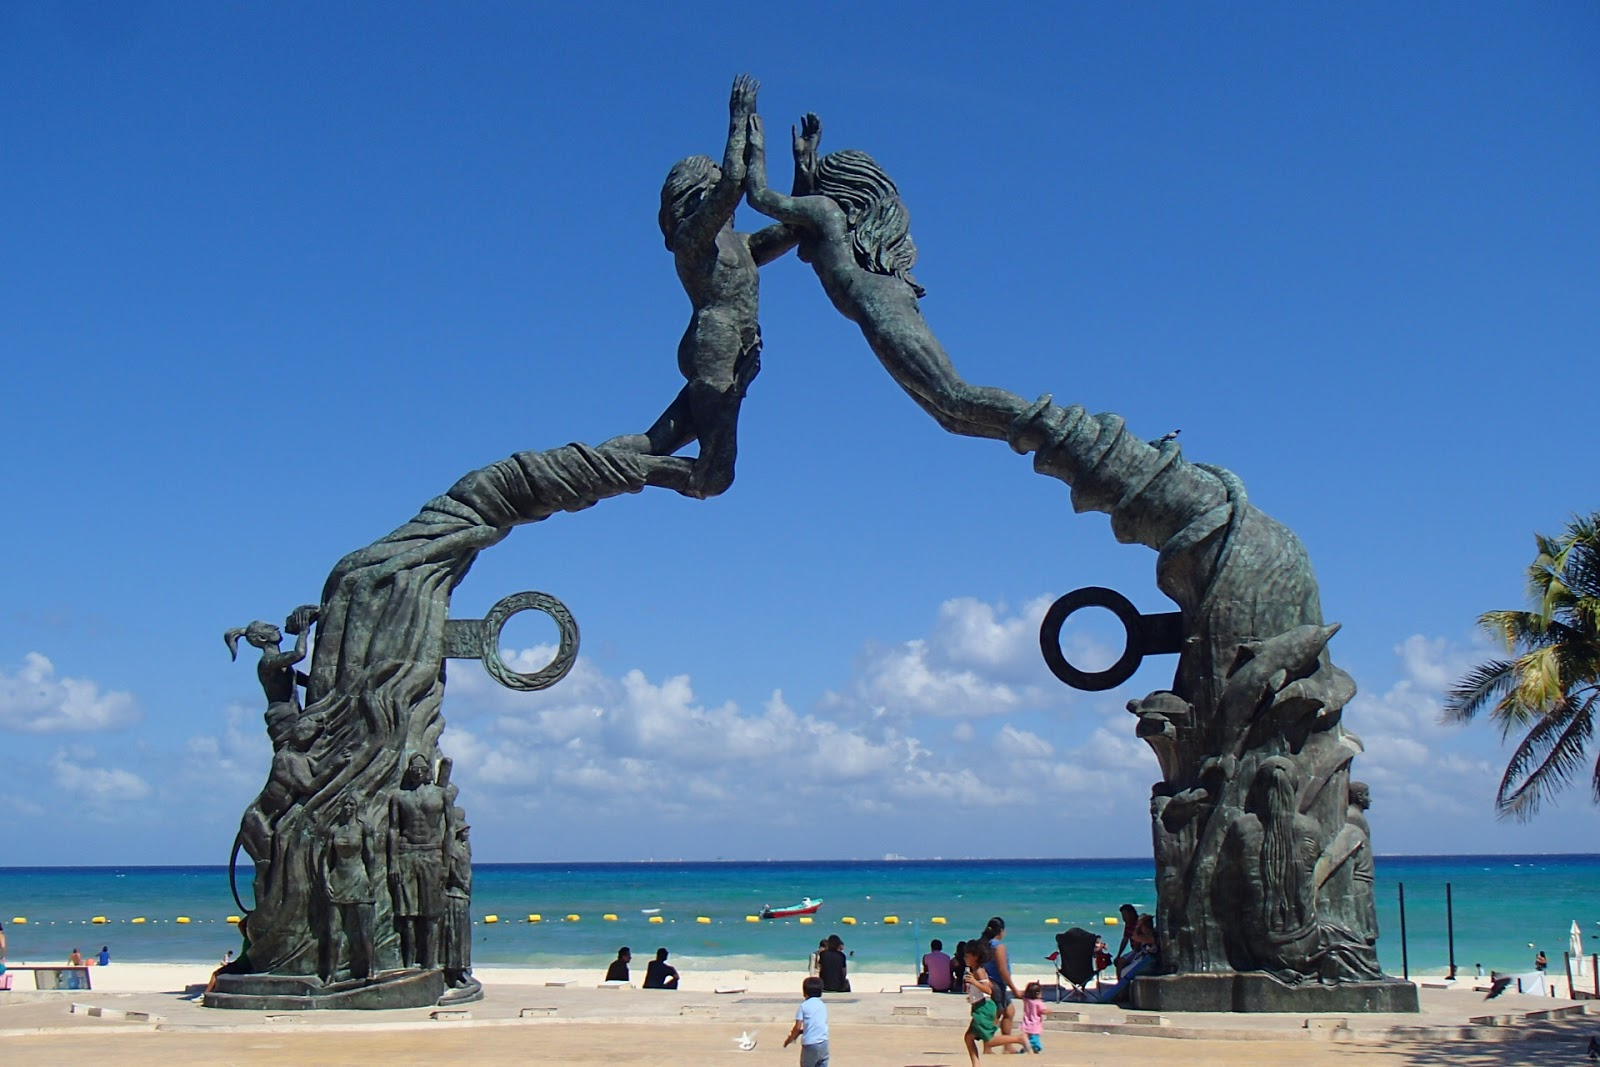 Playa del Carmen travel wallpaper images